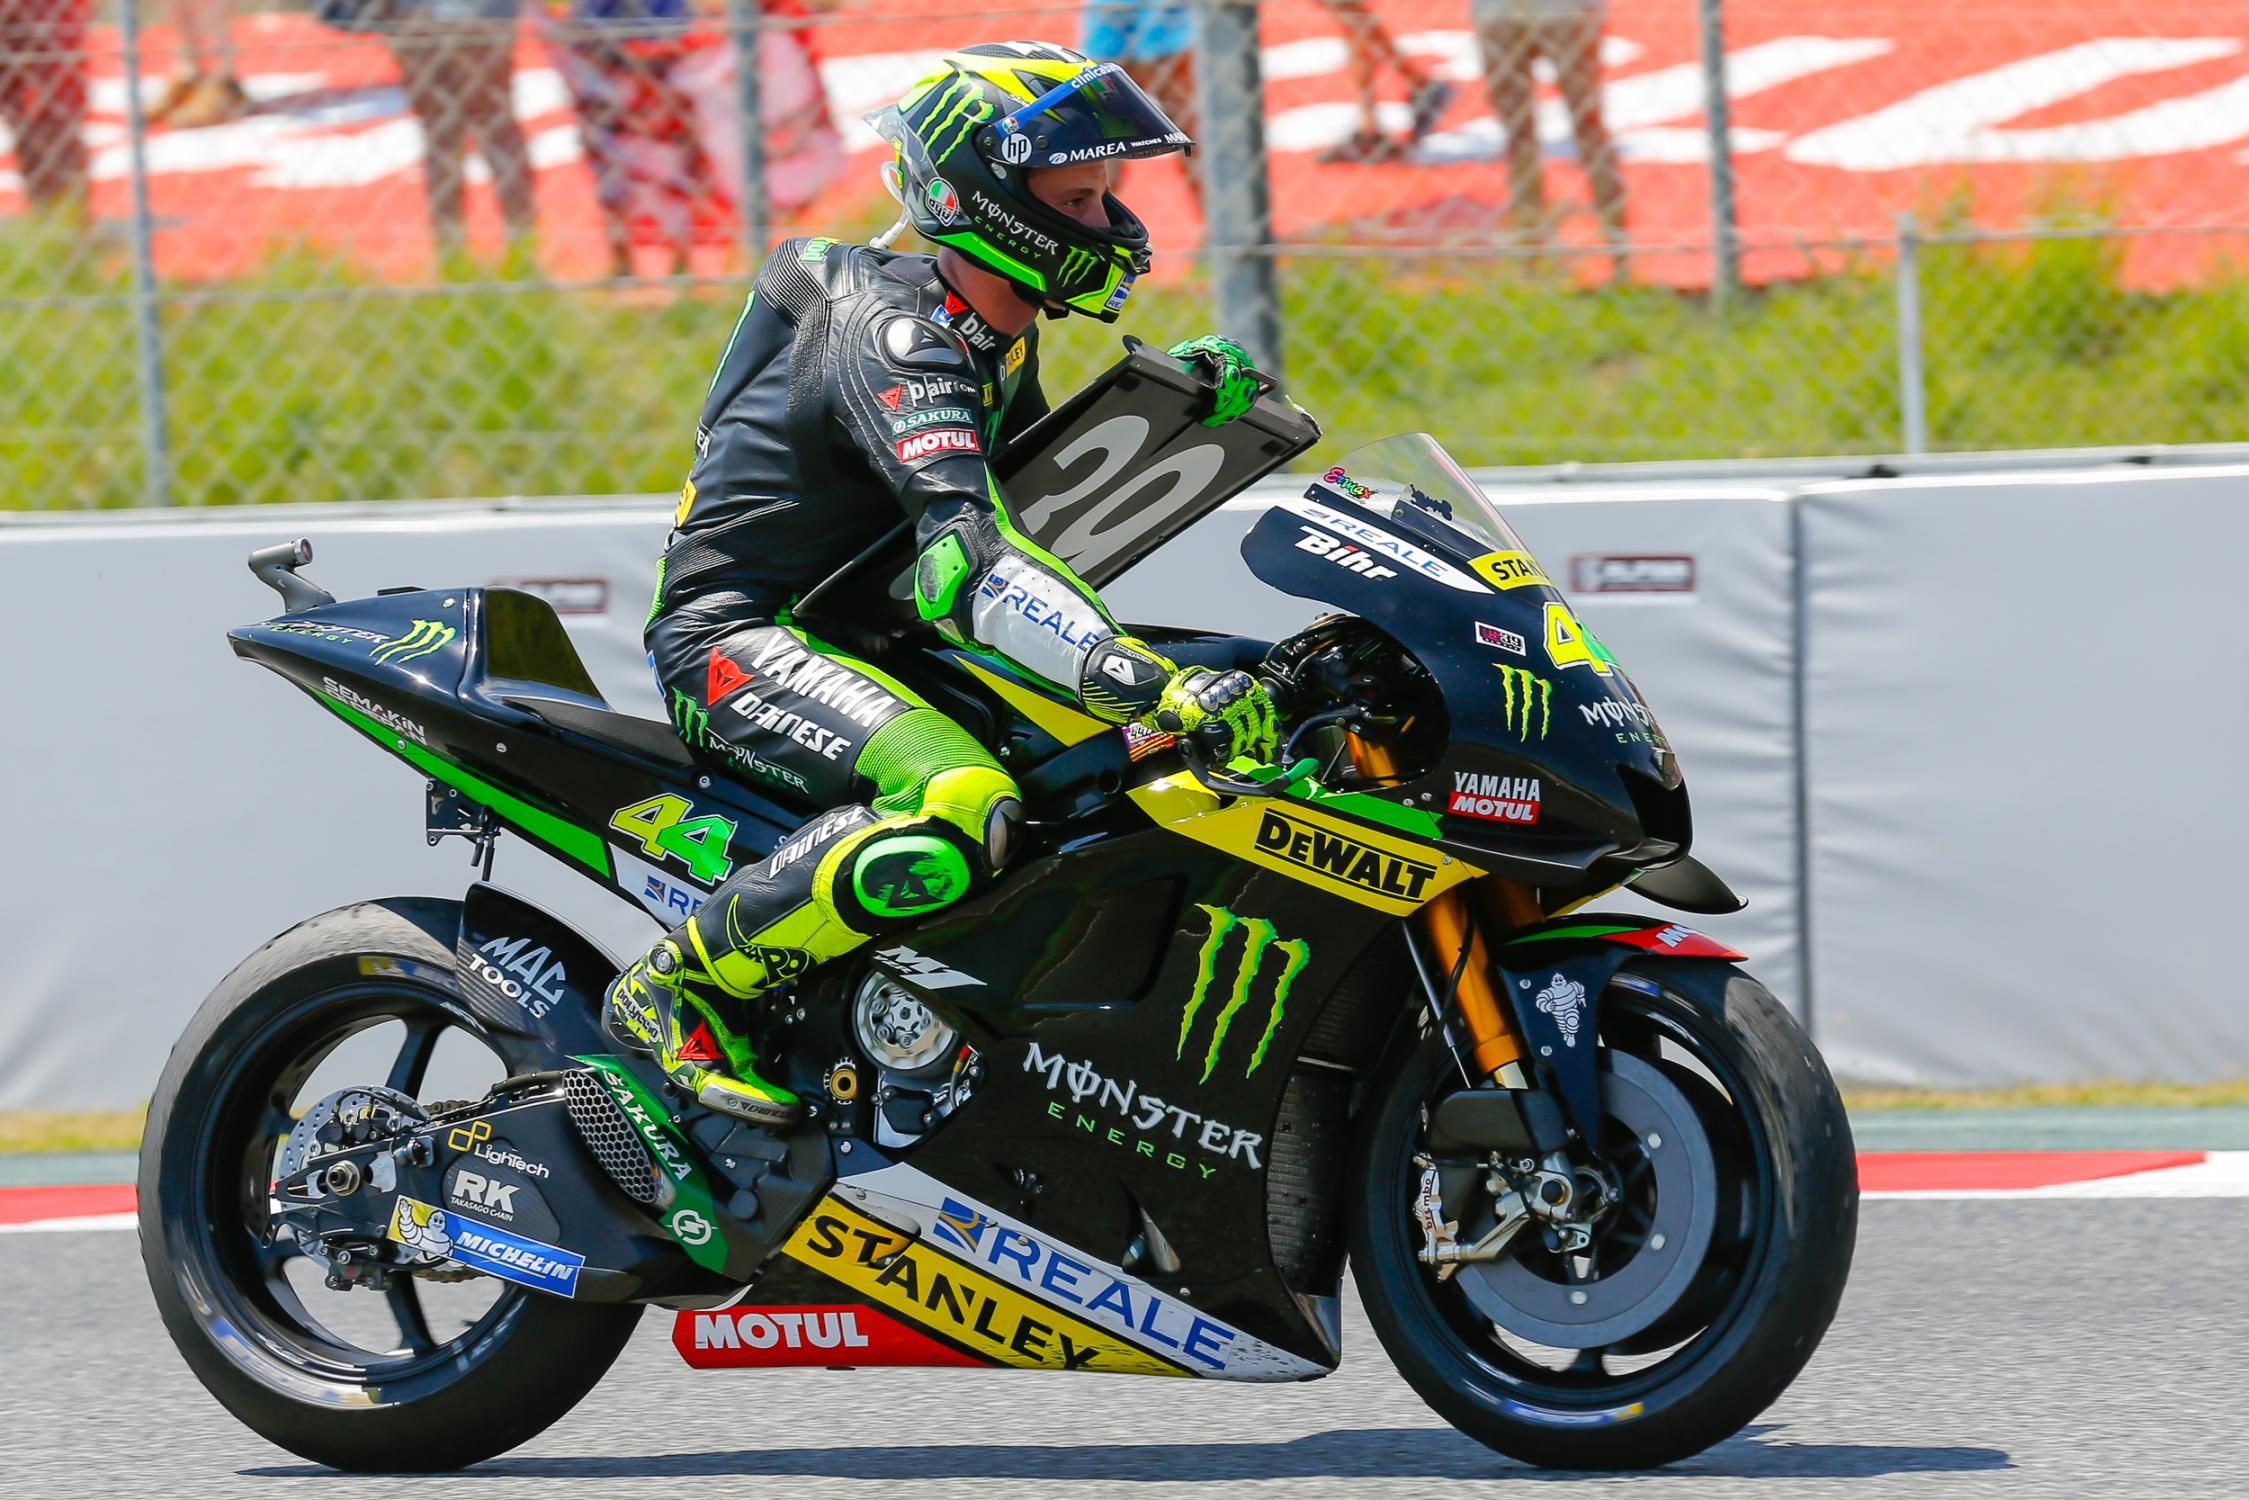 PolEspargaro_homenageando_LuisSalom_CAt16